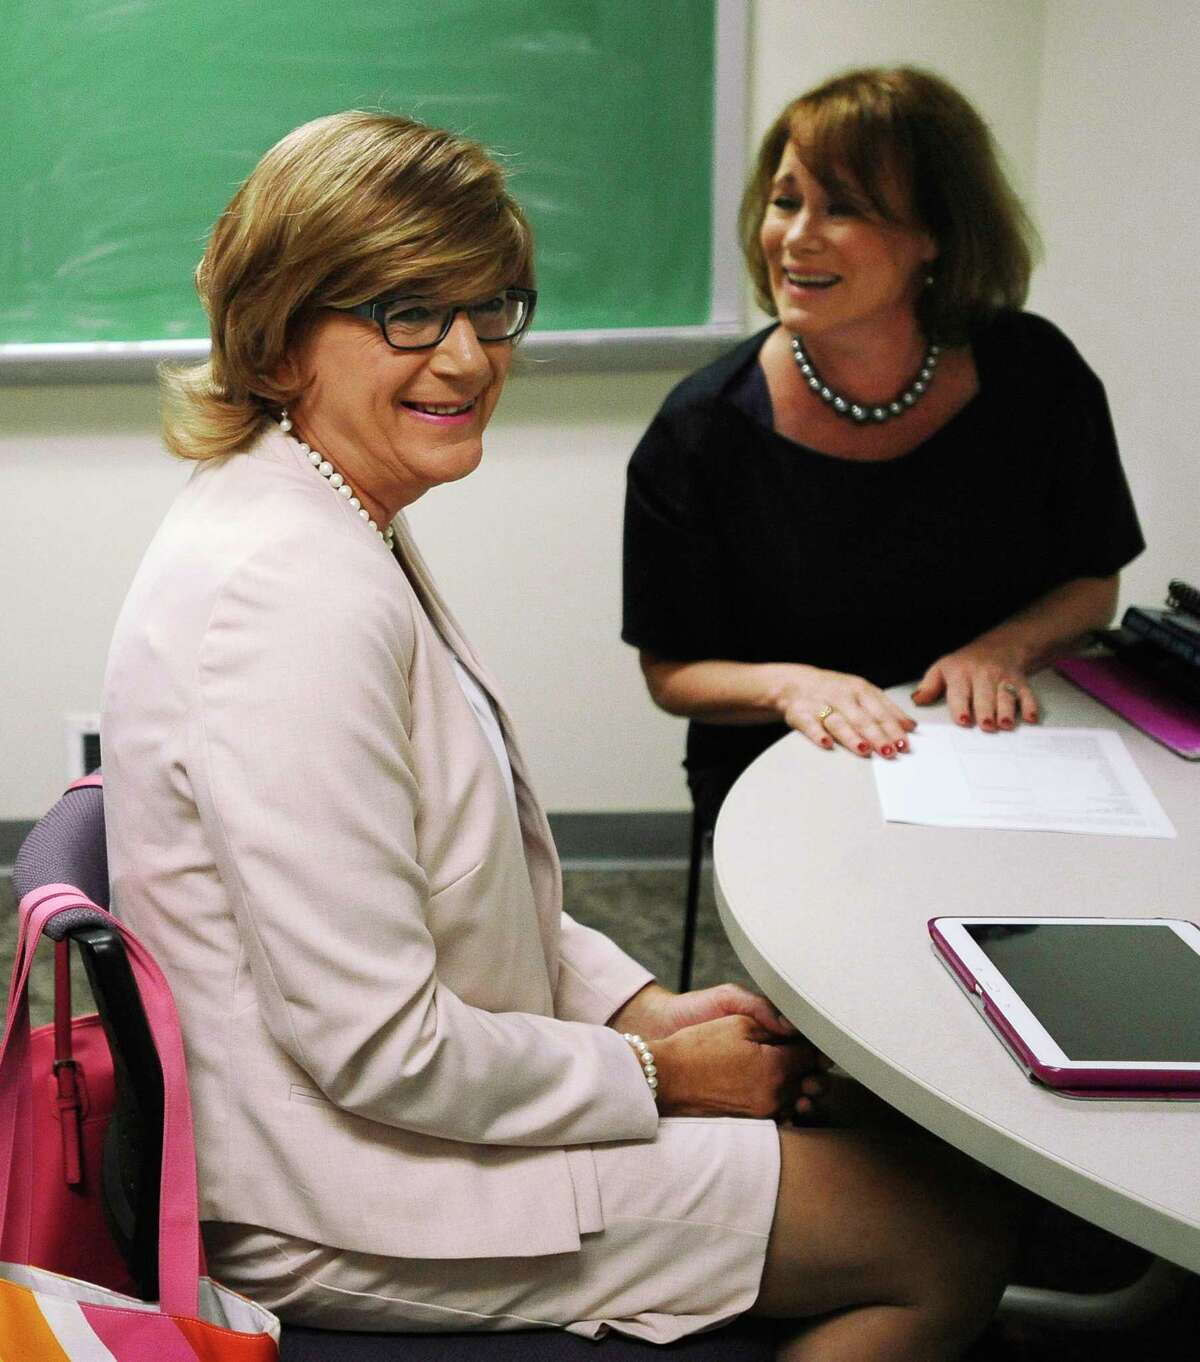 In this July 22, 2015, photo, Brianne Roberts, left, smiles as she works on voice exercises with speech-language pathologist Jean McCarthy, right, at the University of Connecticut's Speech and Hearing Clinic in Storrs, Conn. Roberts is in a program at UConn that teaches transgender people how to sound more like the sex with which they identify.